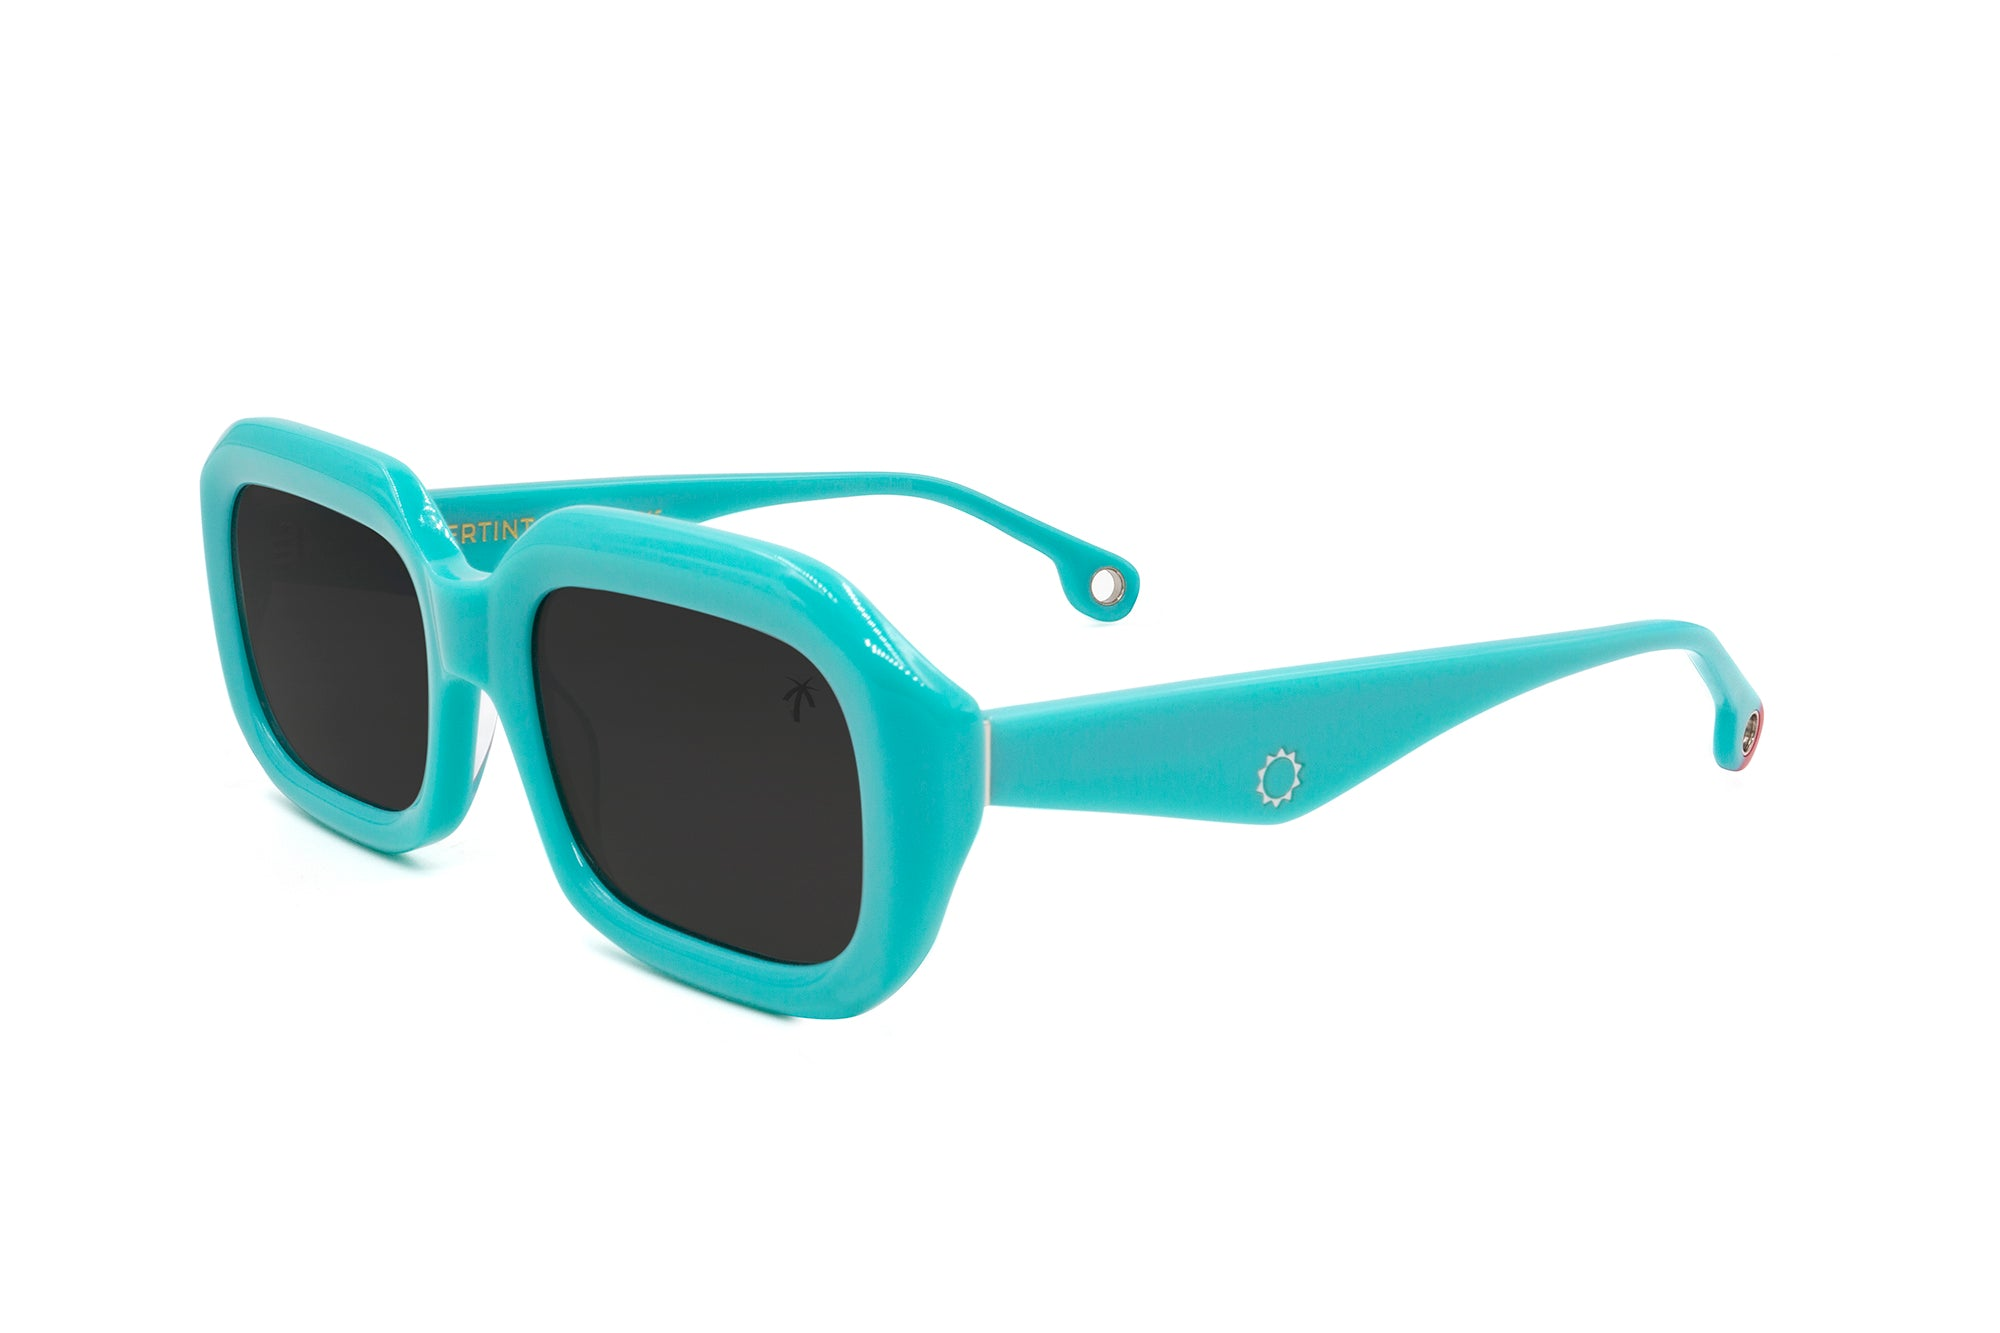 Compton in Teal - Peppertint - Designer sunglasses